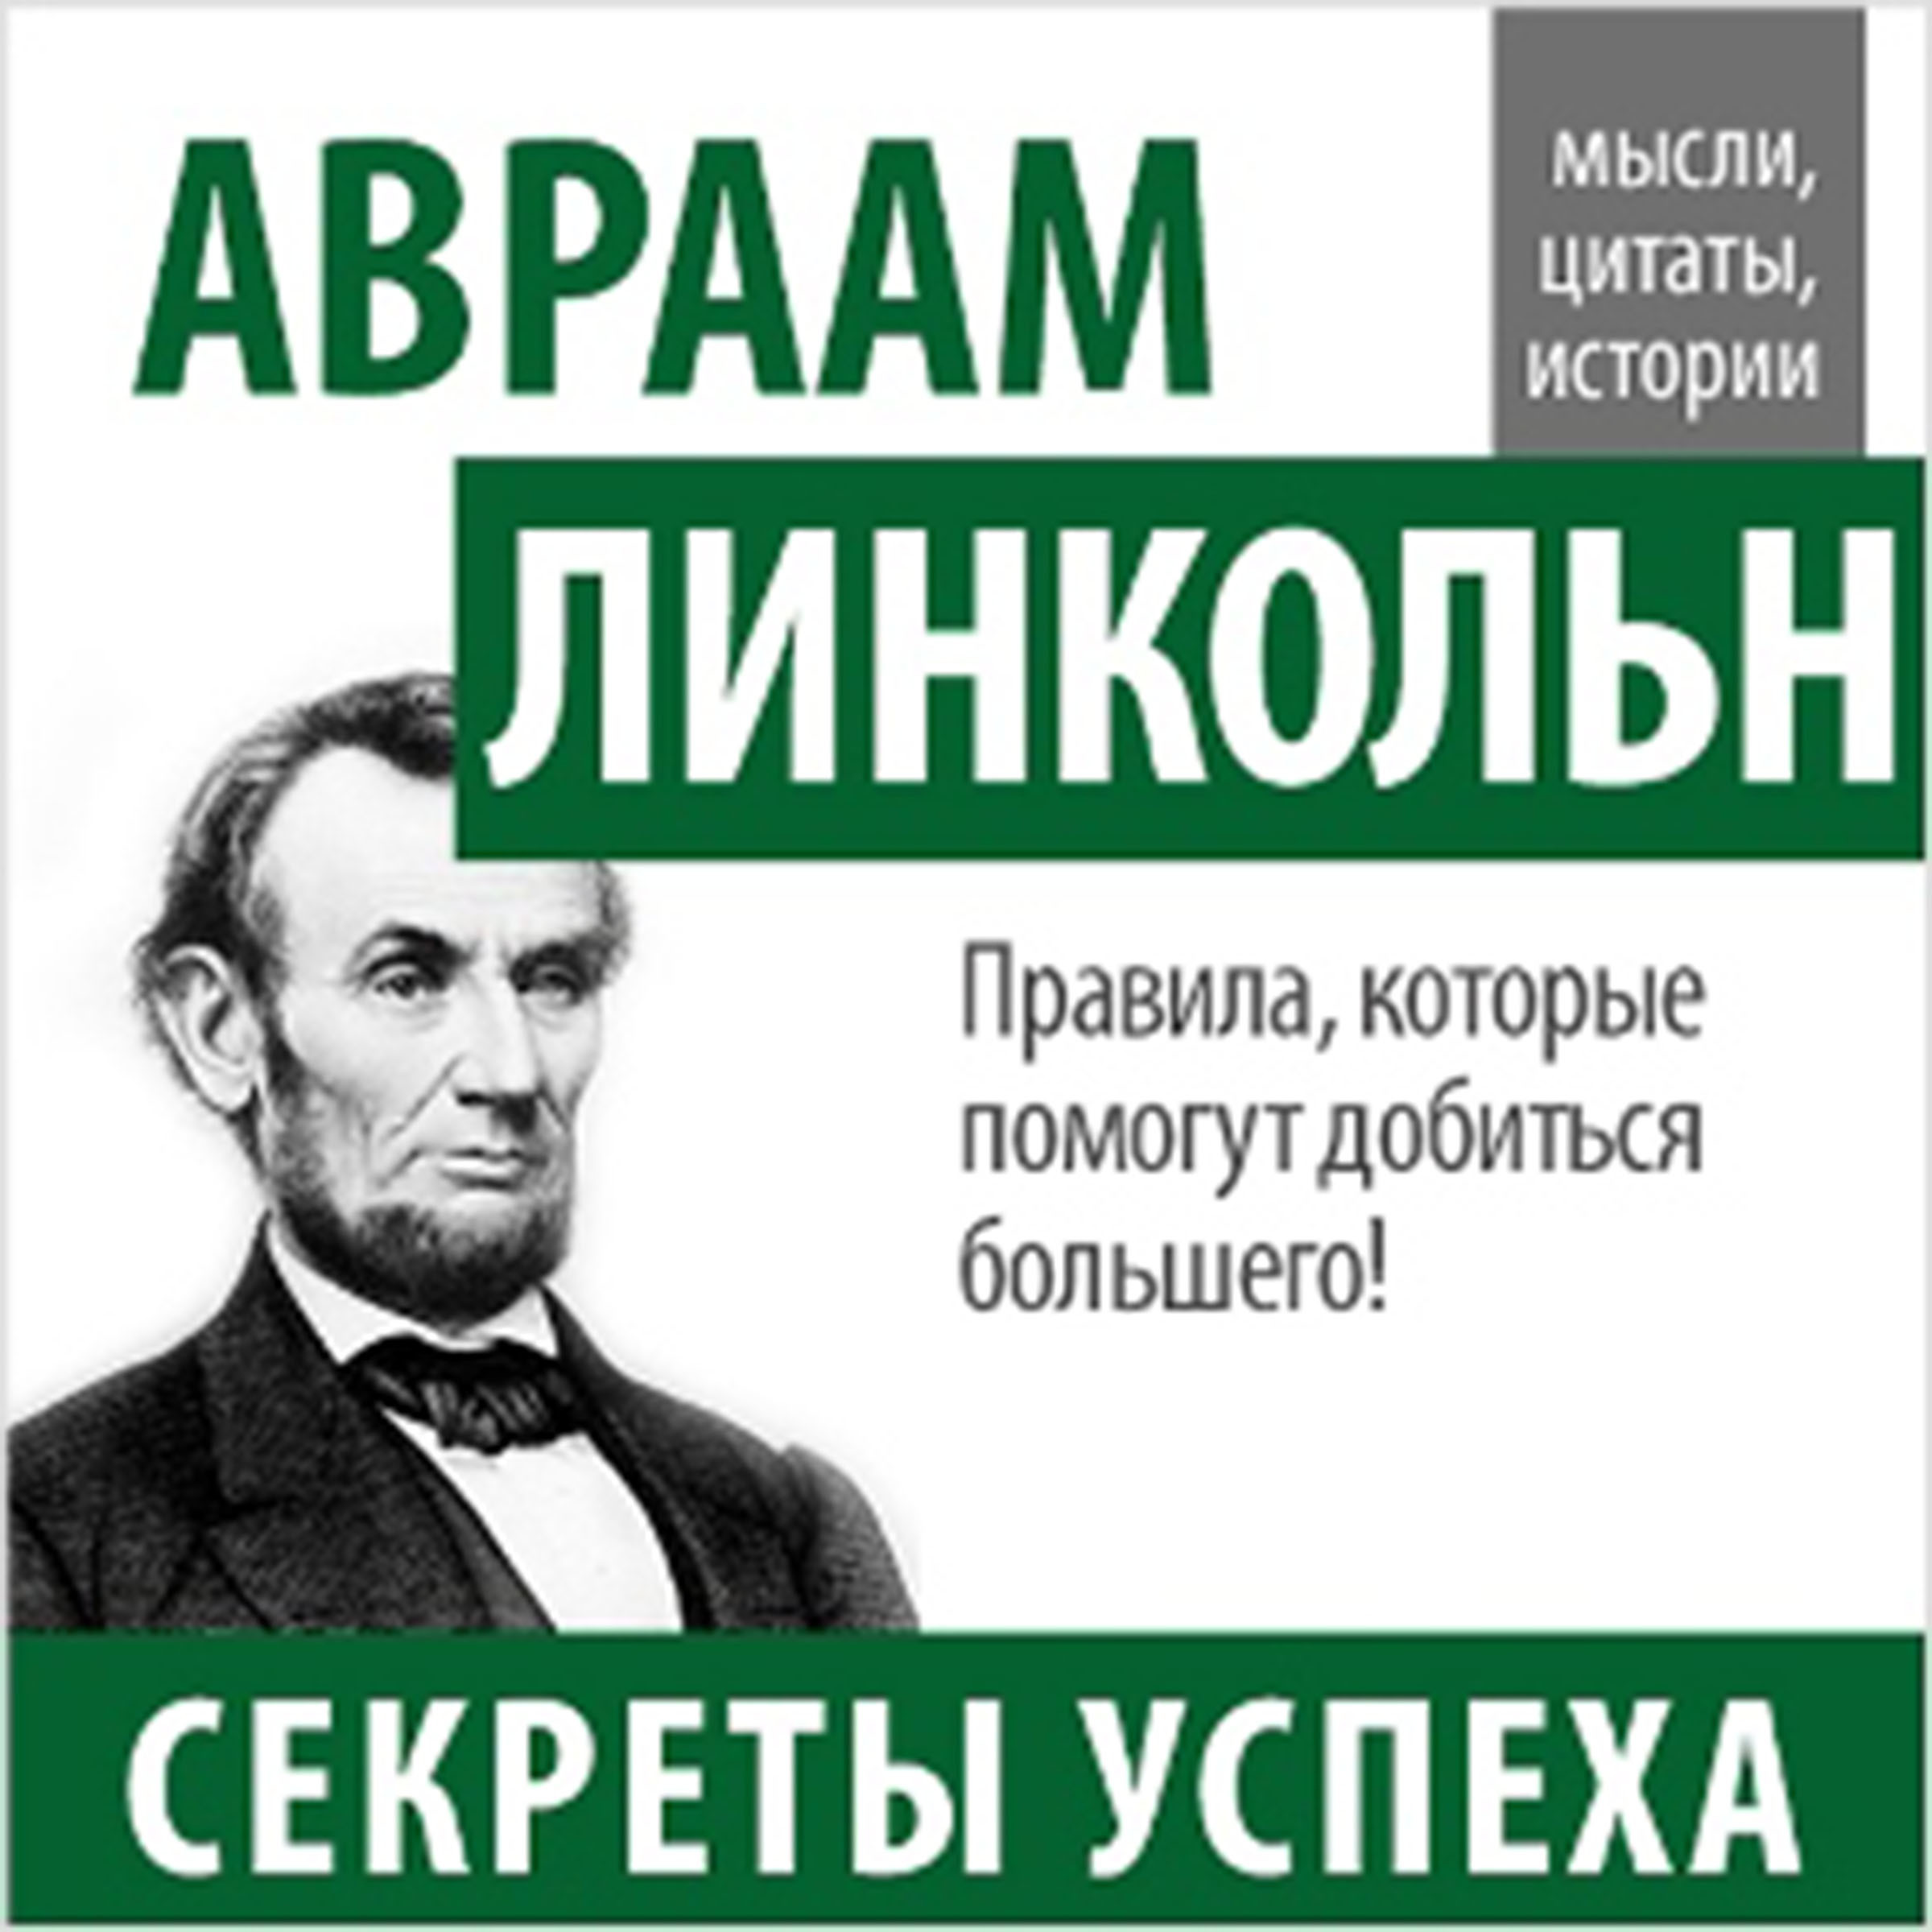 Printable Abraham Lincoln: Secrets of Success [Russian Edition] Audiobook Cover Art